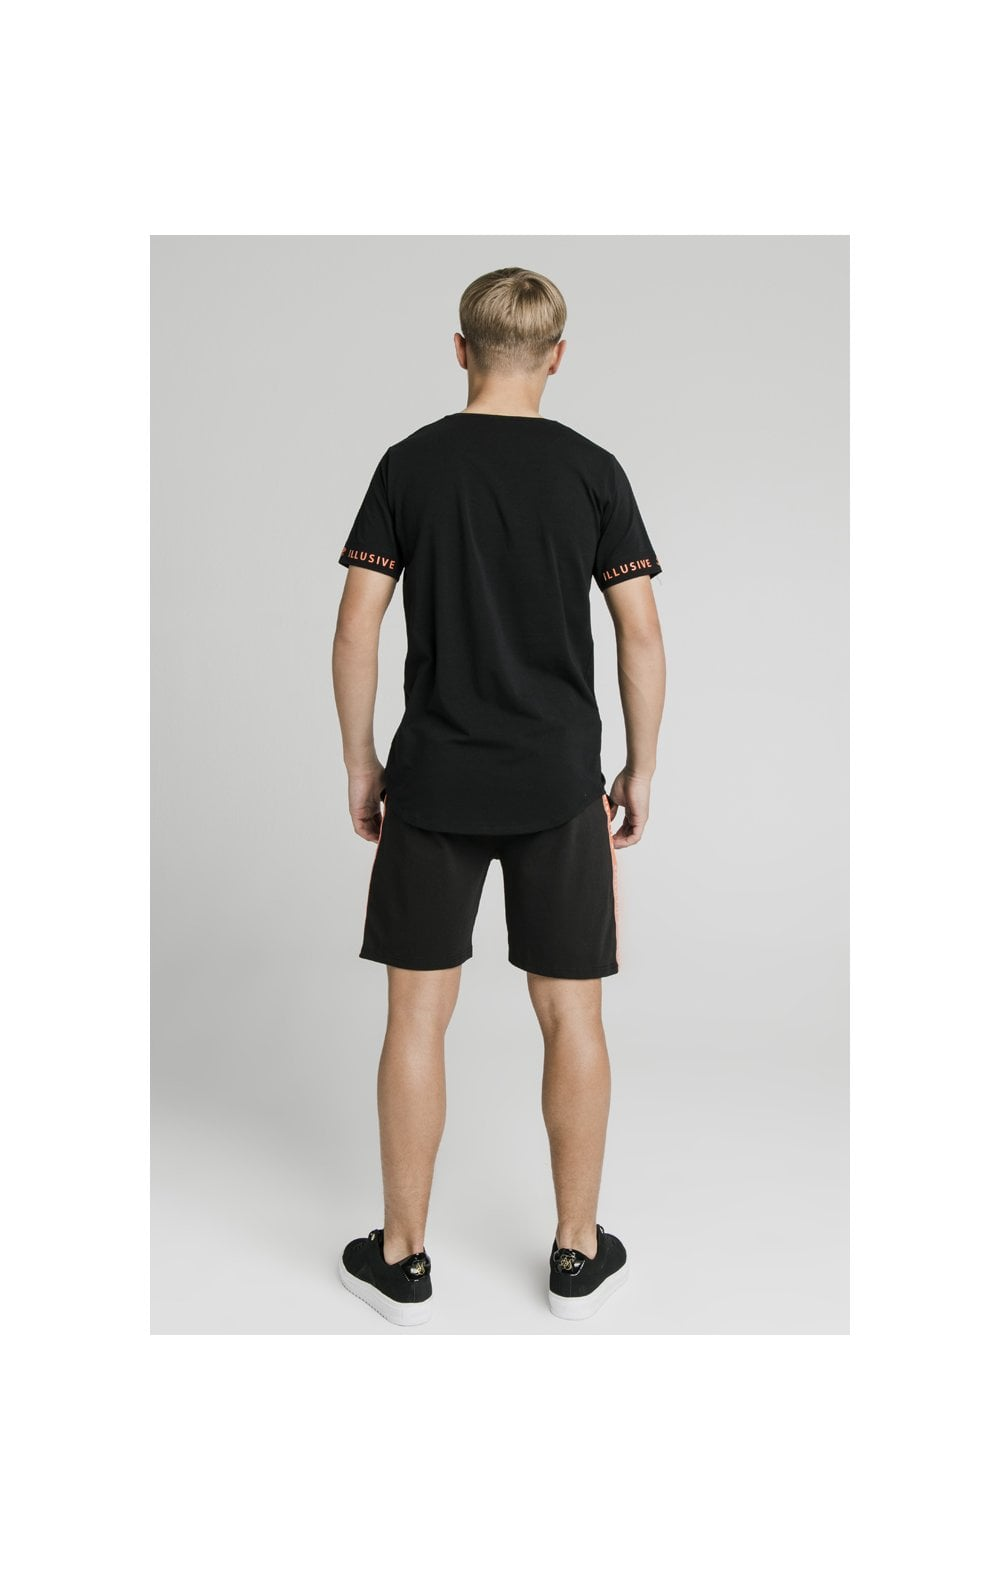 Illusive London Tape Shorts - Black (4)